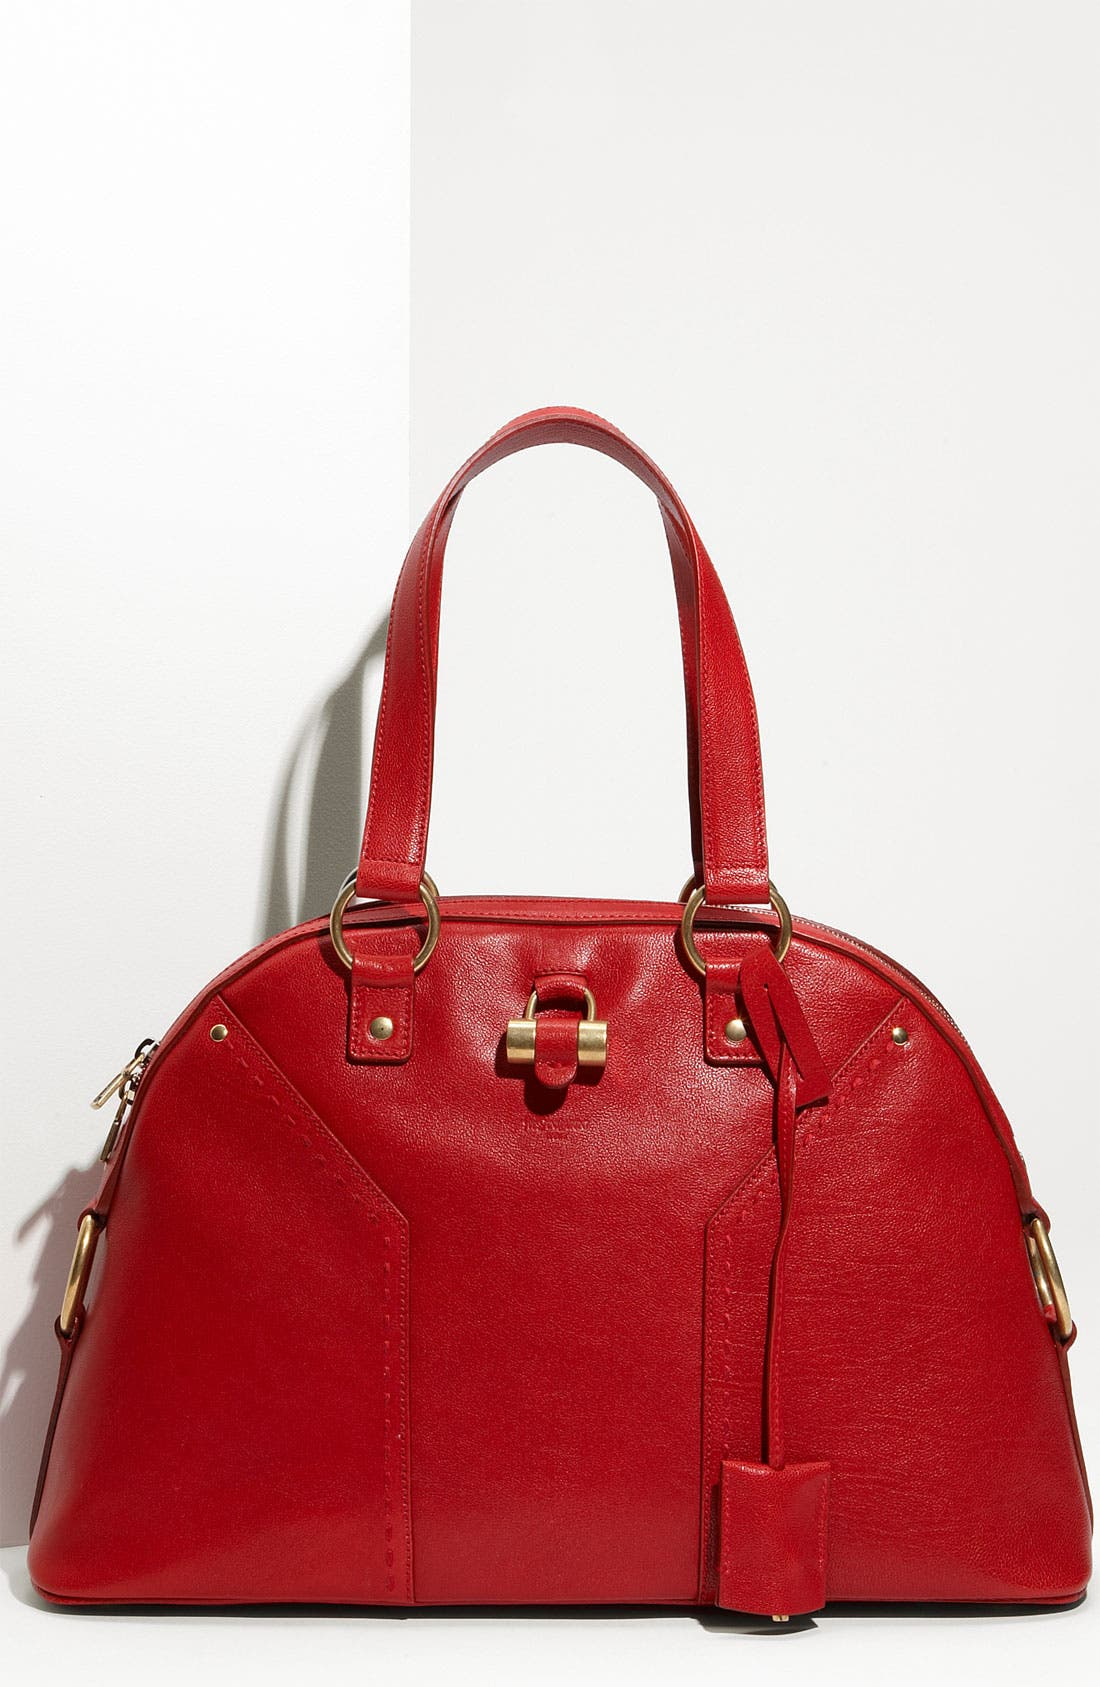 Alternate Image 1 Selected - Yves Saint Laurent 'Muse - Large' Leather Dome Satchel